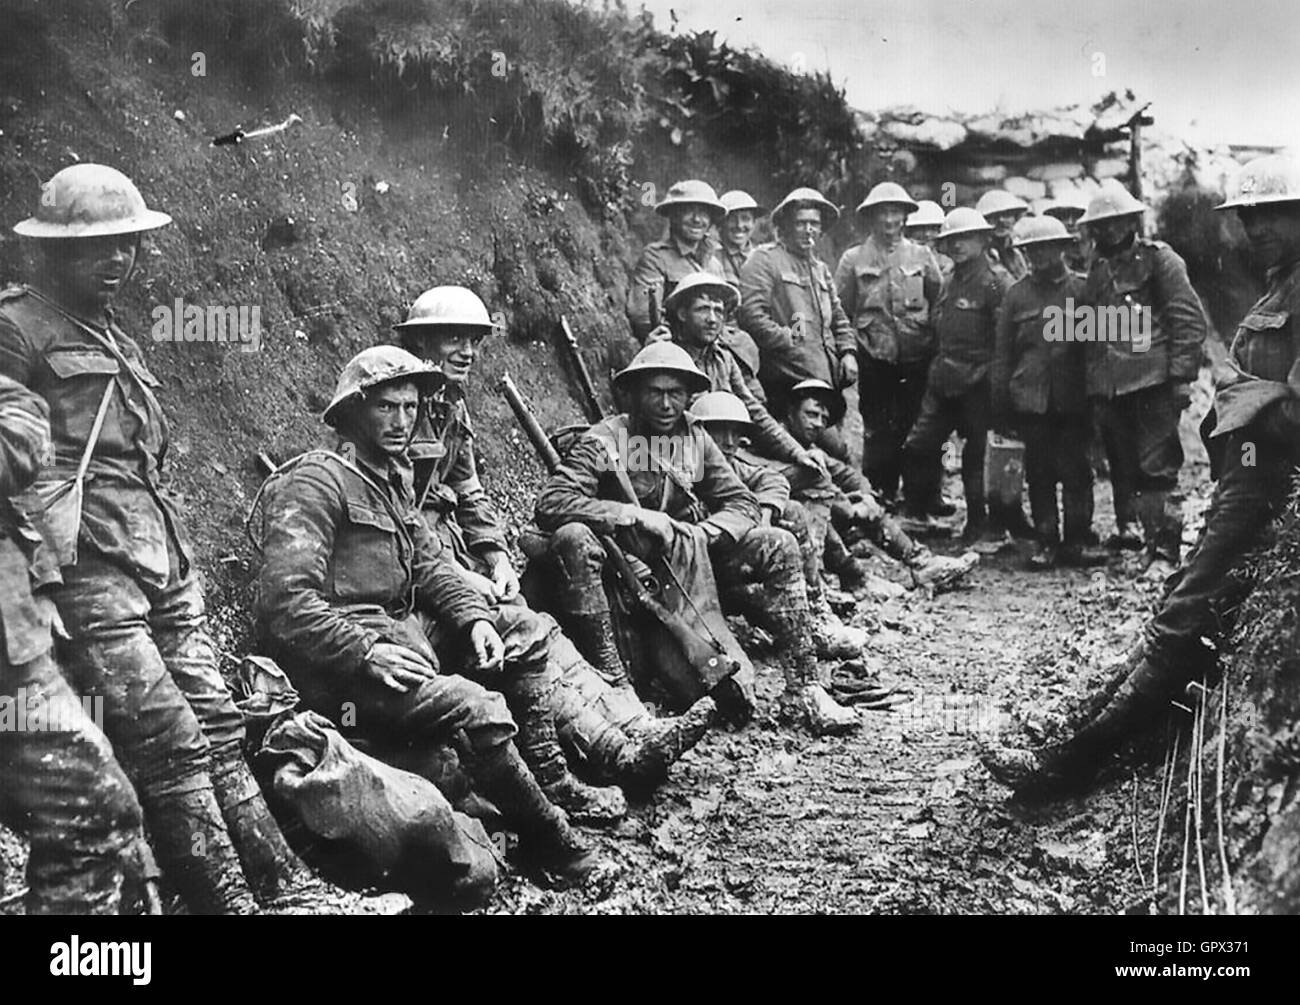 FIRST WORLD WAR A group of the Royal Irish Rifles in a wide supply trench at the Somme front in July 1916 - Stock Image